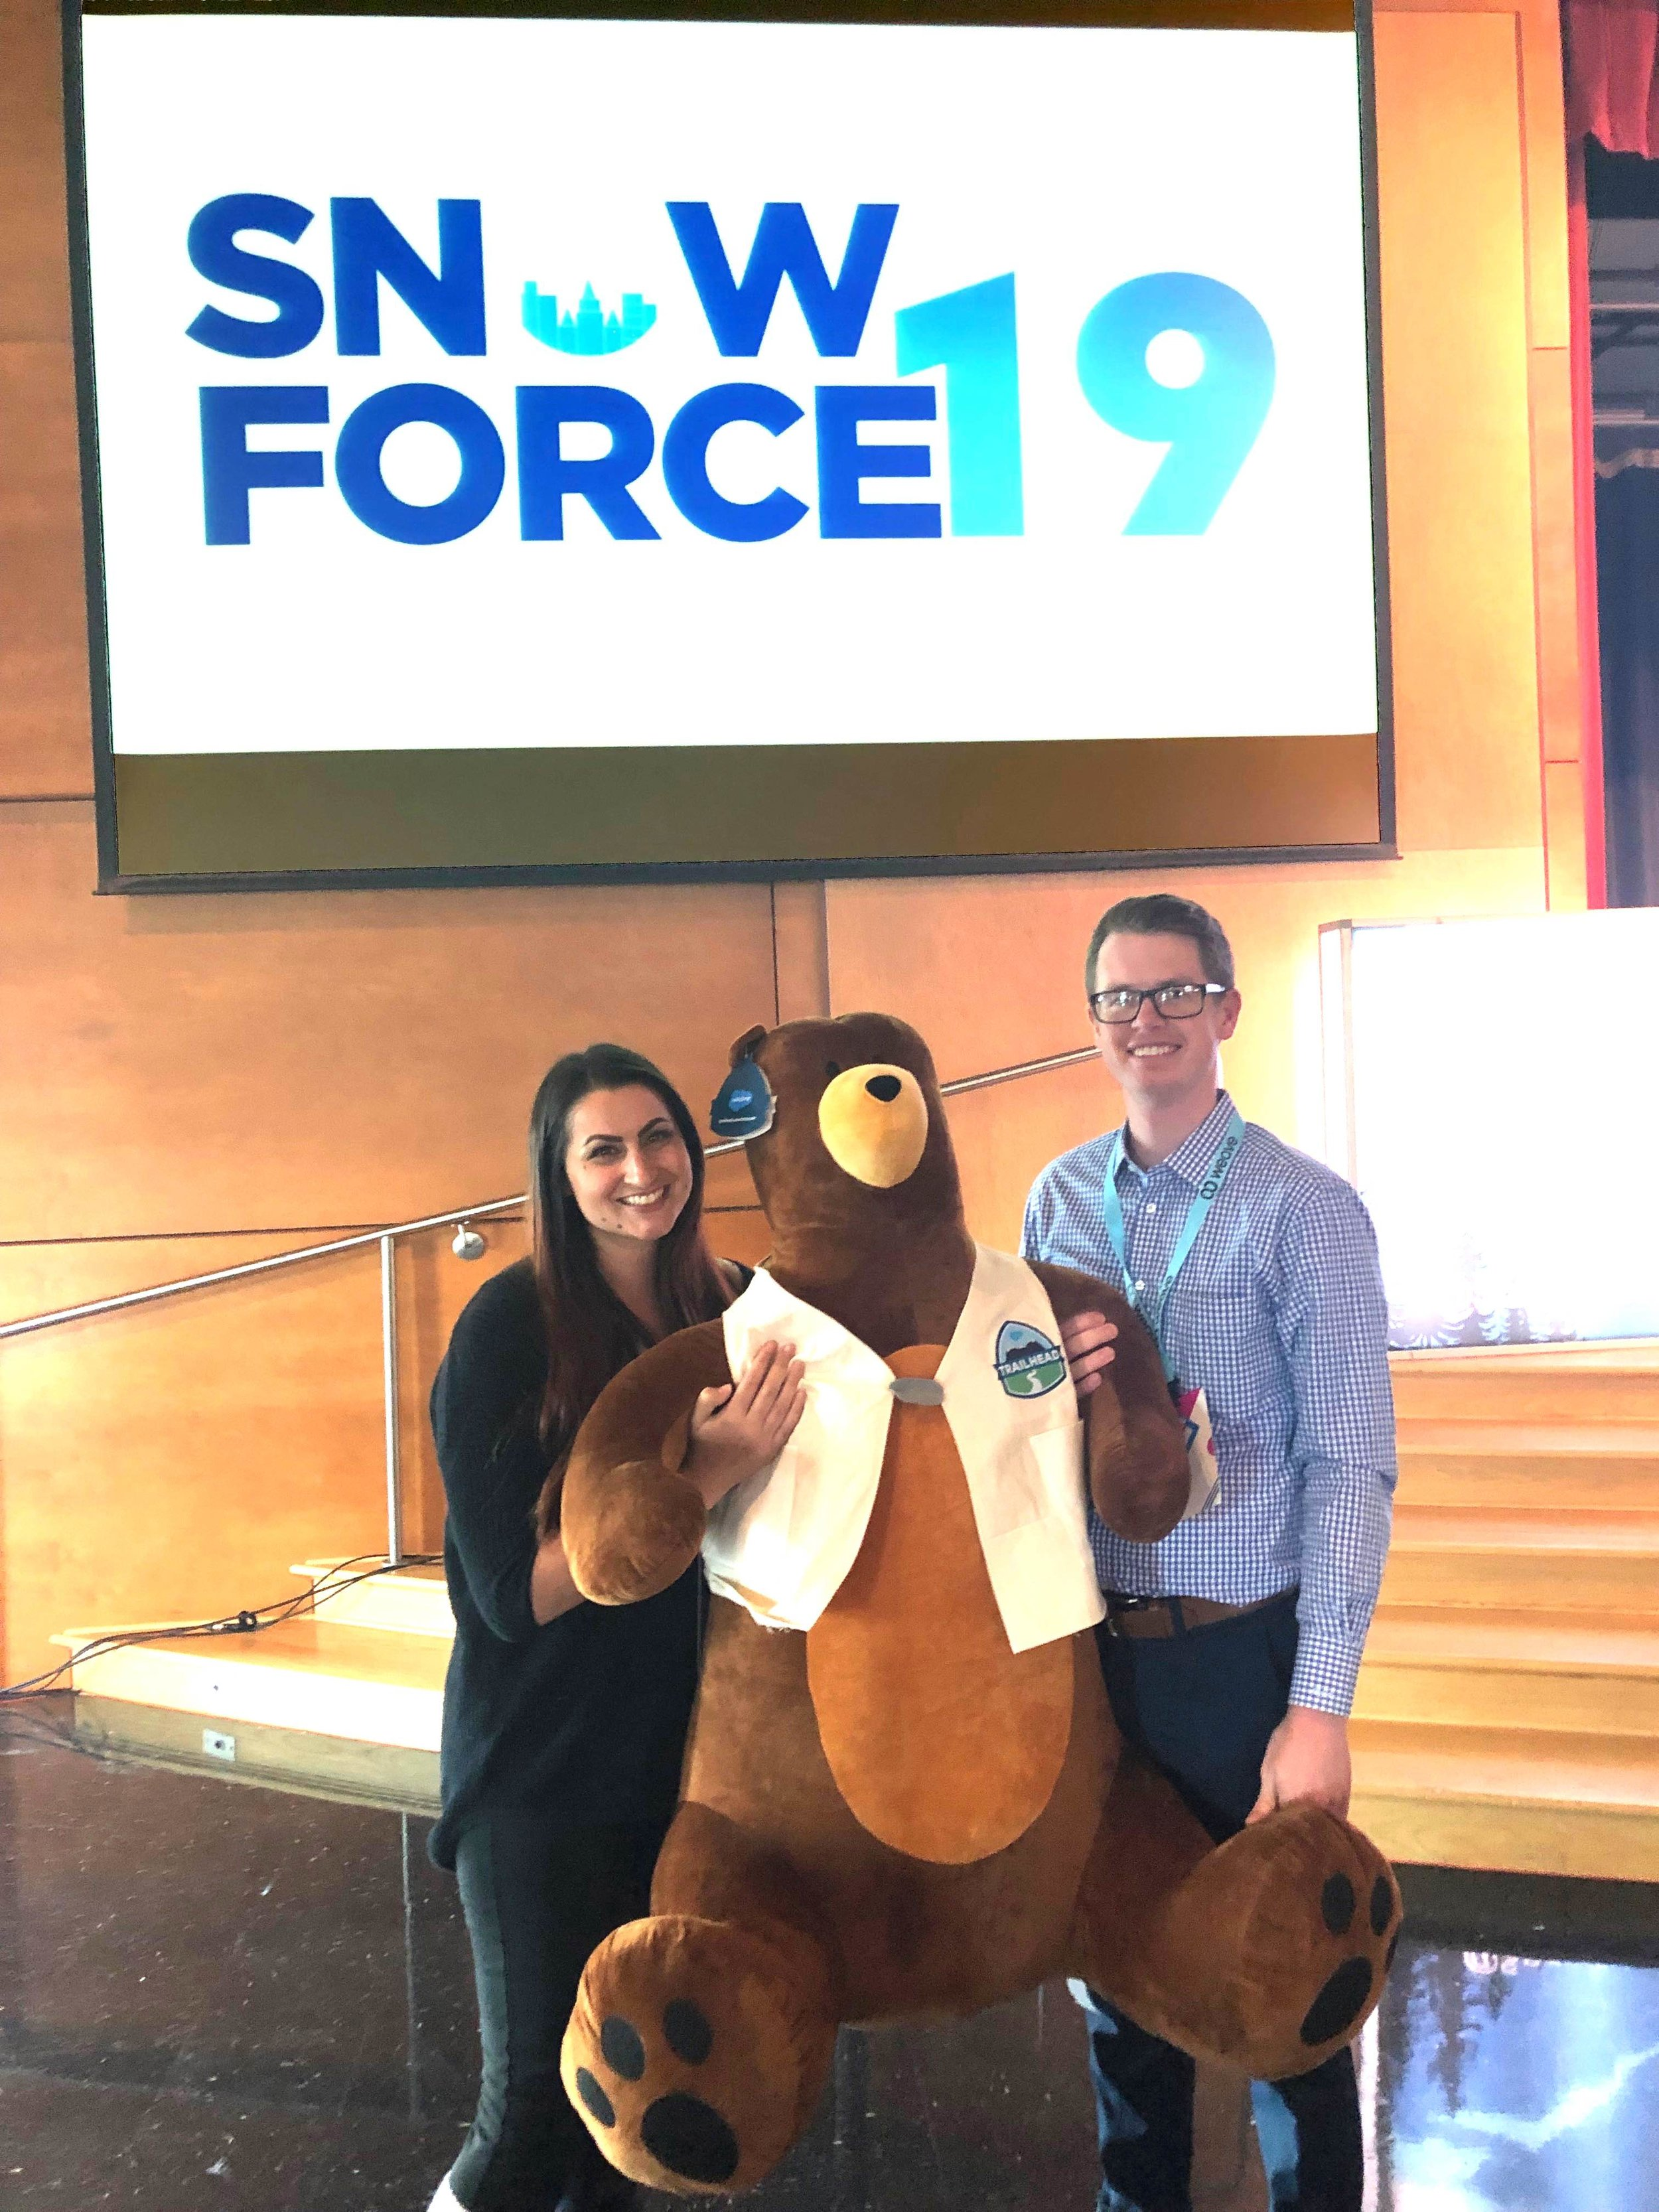 hireforce_snowforce-team-picture_2019-03-27-lower.jpg